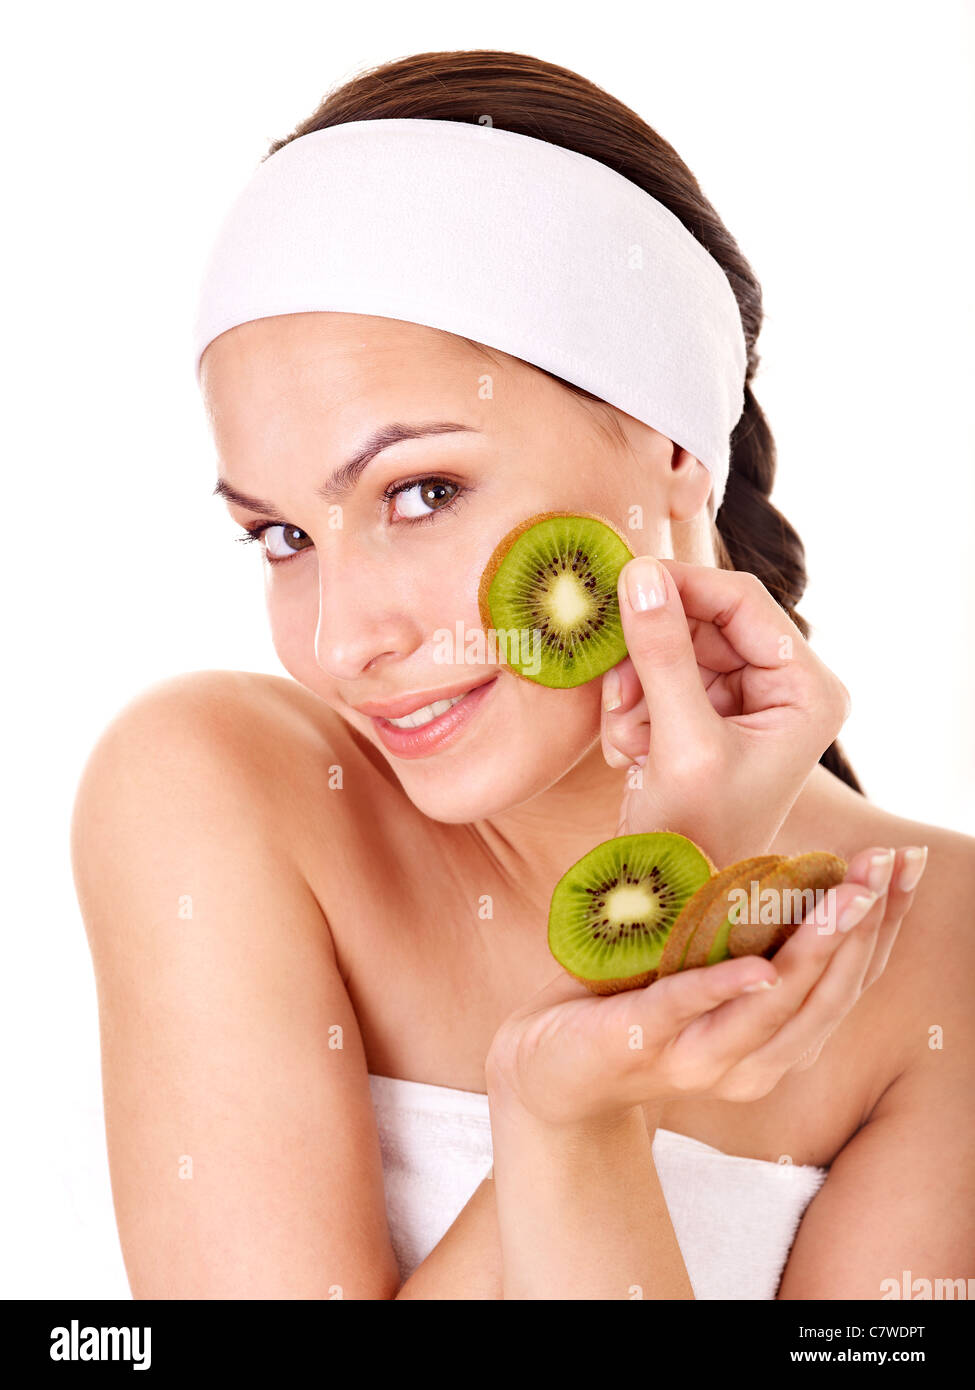 Fruit Facial Masks 87